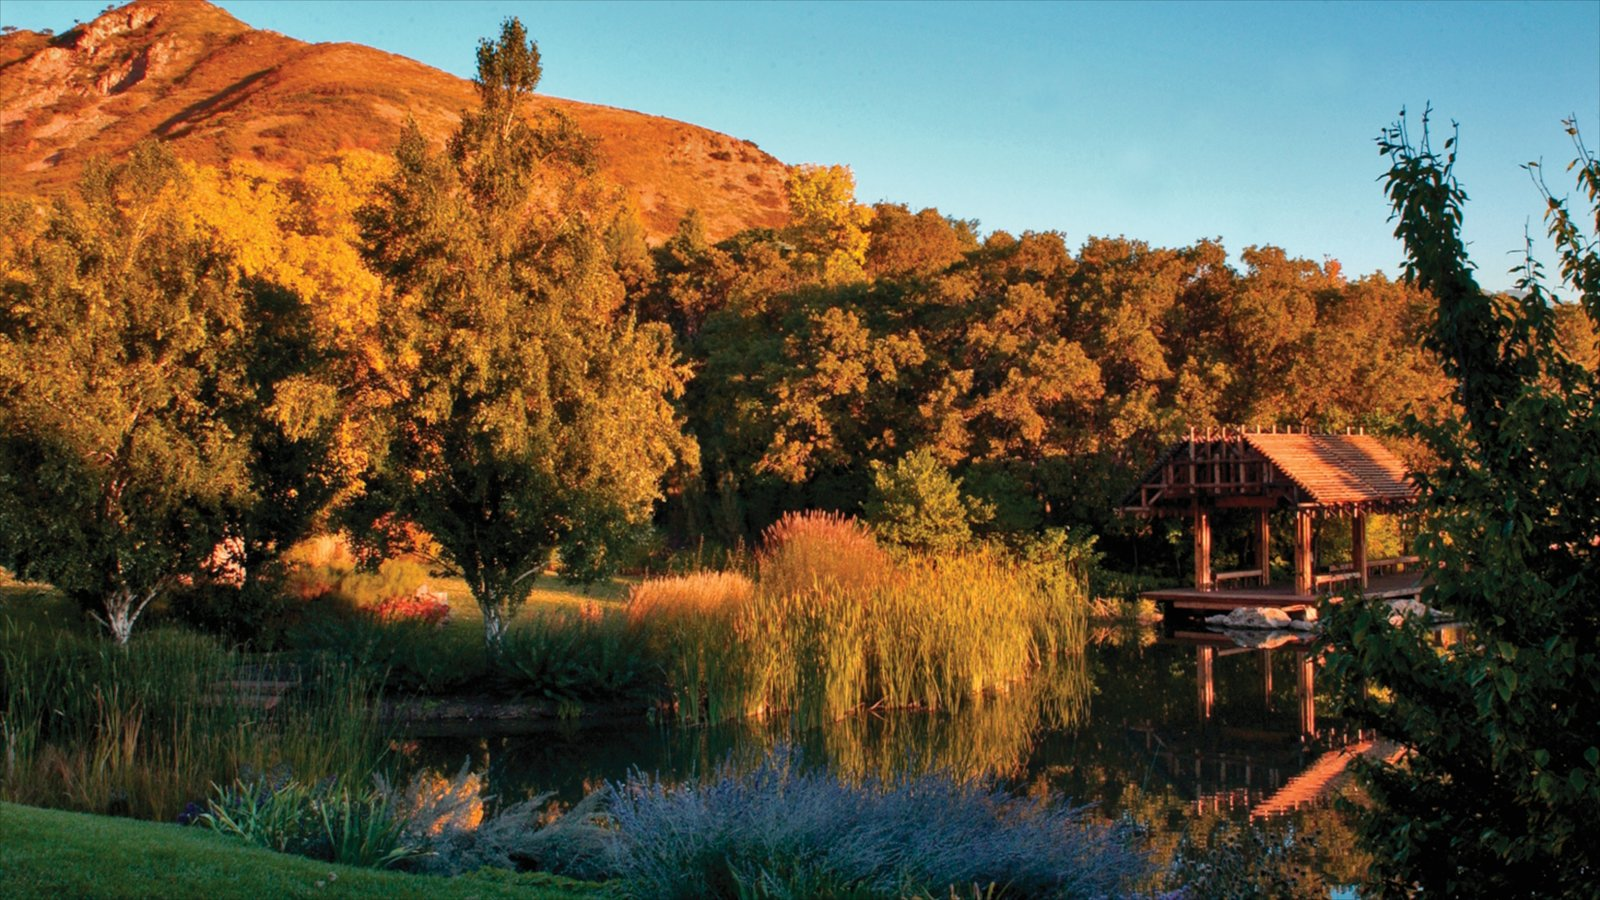 Red Butte Garden and Arboreteum showing landscape views, a park and a pond